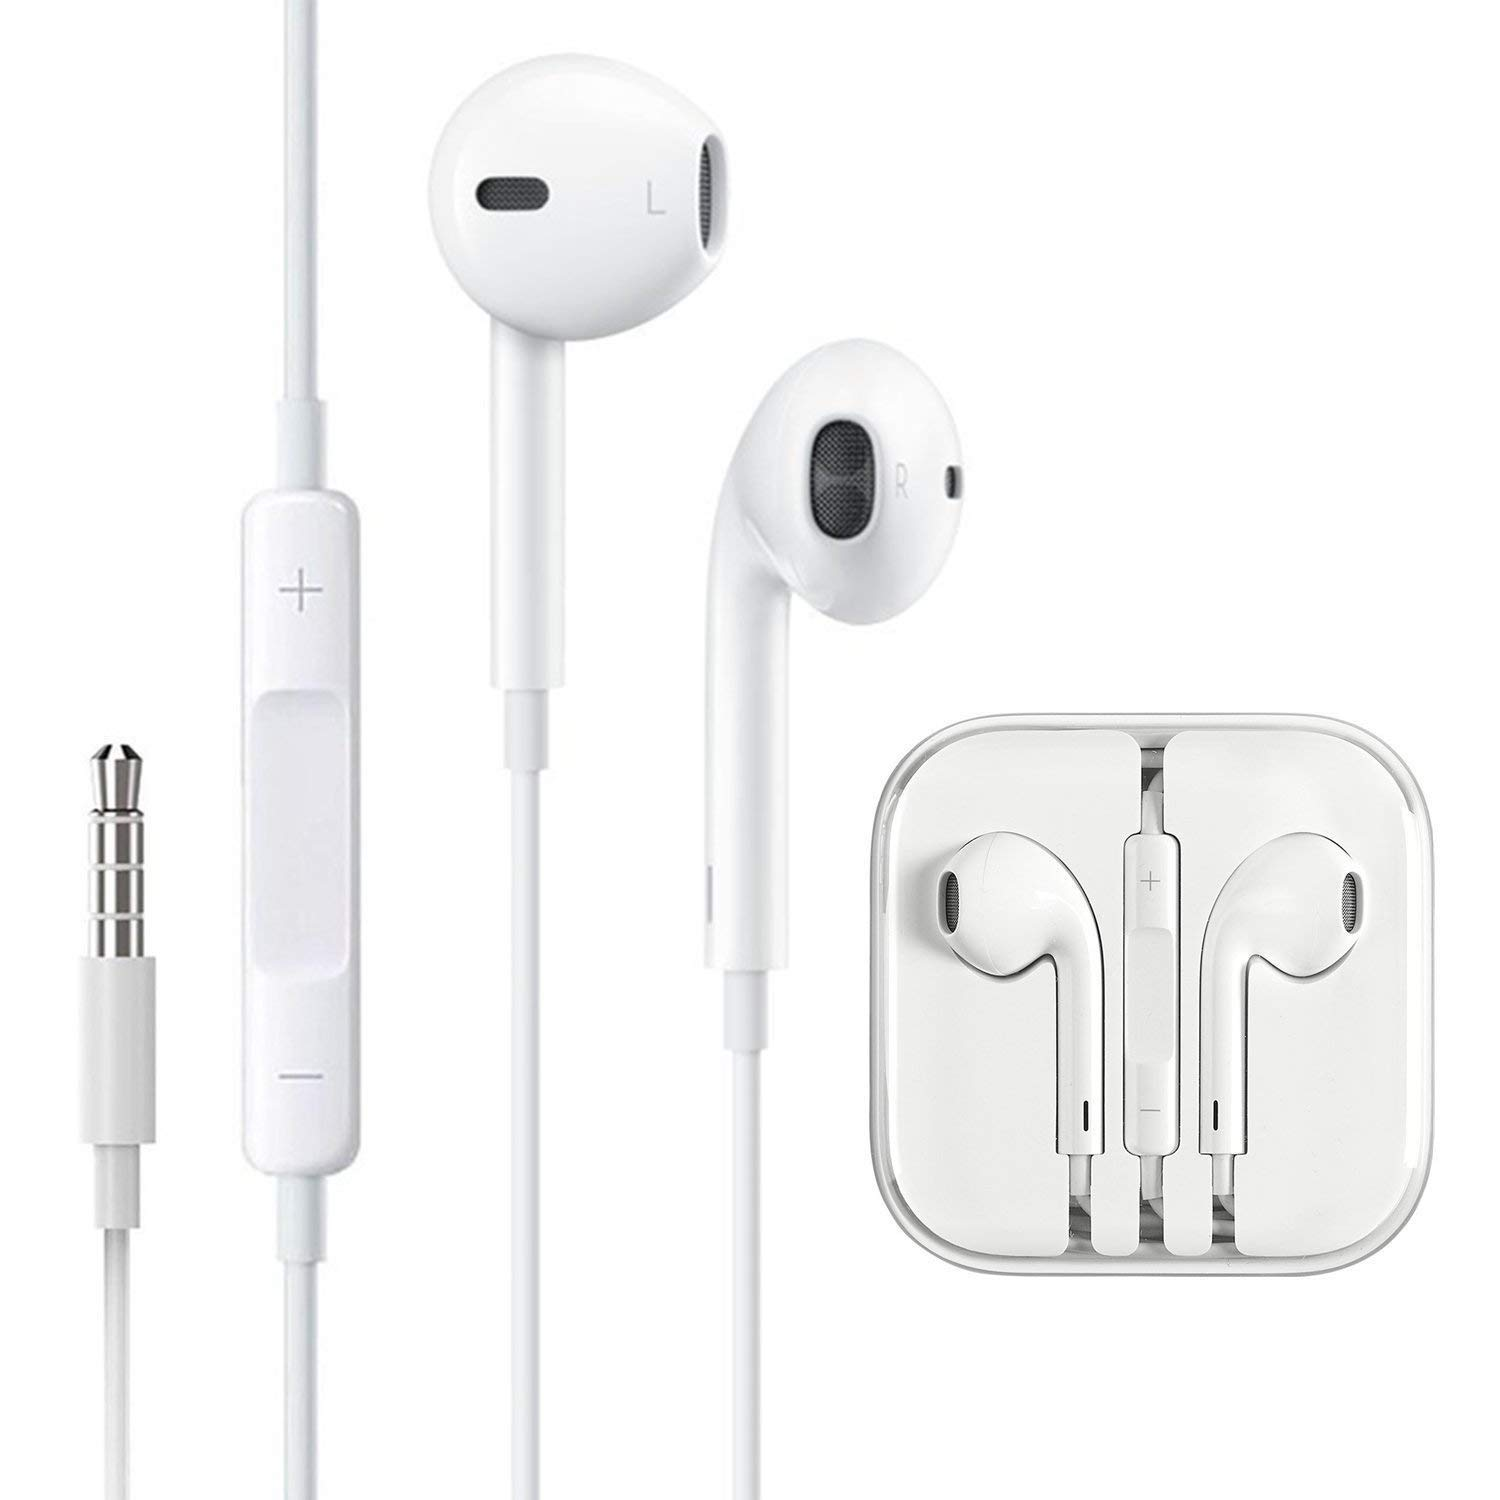 Headphones/Earphones/Earbuds, Wired Headphones Volume Control Compatible with iPhone iPod iPad Samsung/Android / MP3 MP4